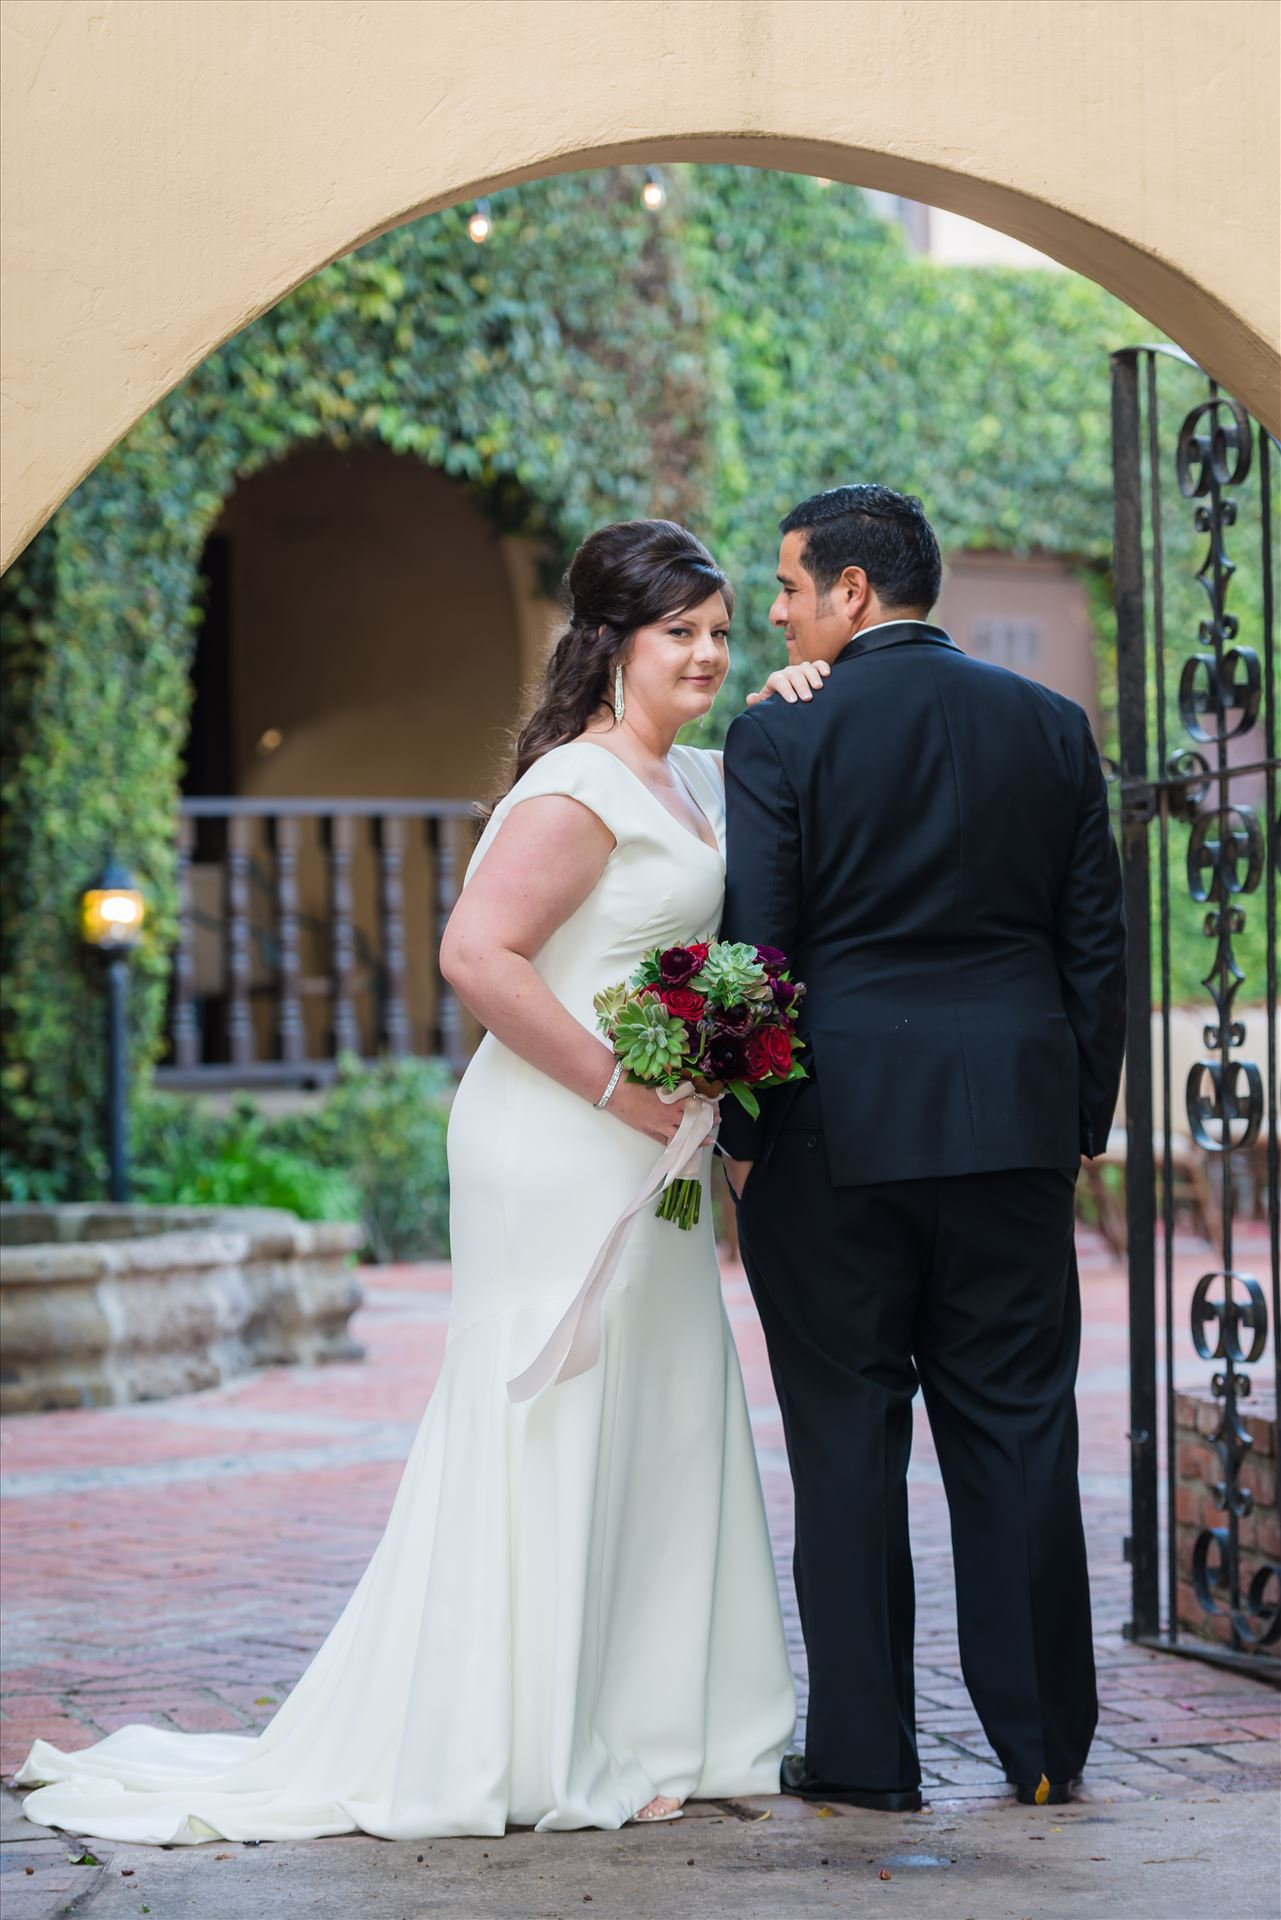 Mary and Alejandro 19 - Wedding photography at the Historic Santa Maria Inn in Santa Maria, California by Mirror's Edge Photography. Bride and Groom Hidden Courtyard. by Sarah Williams